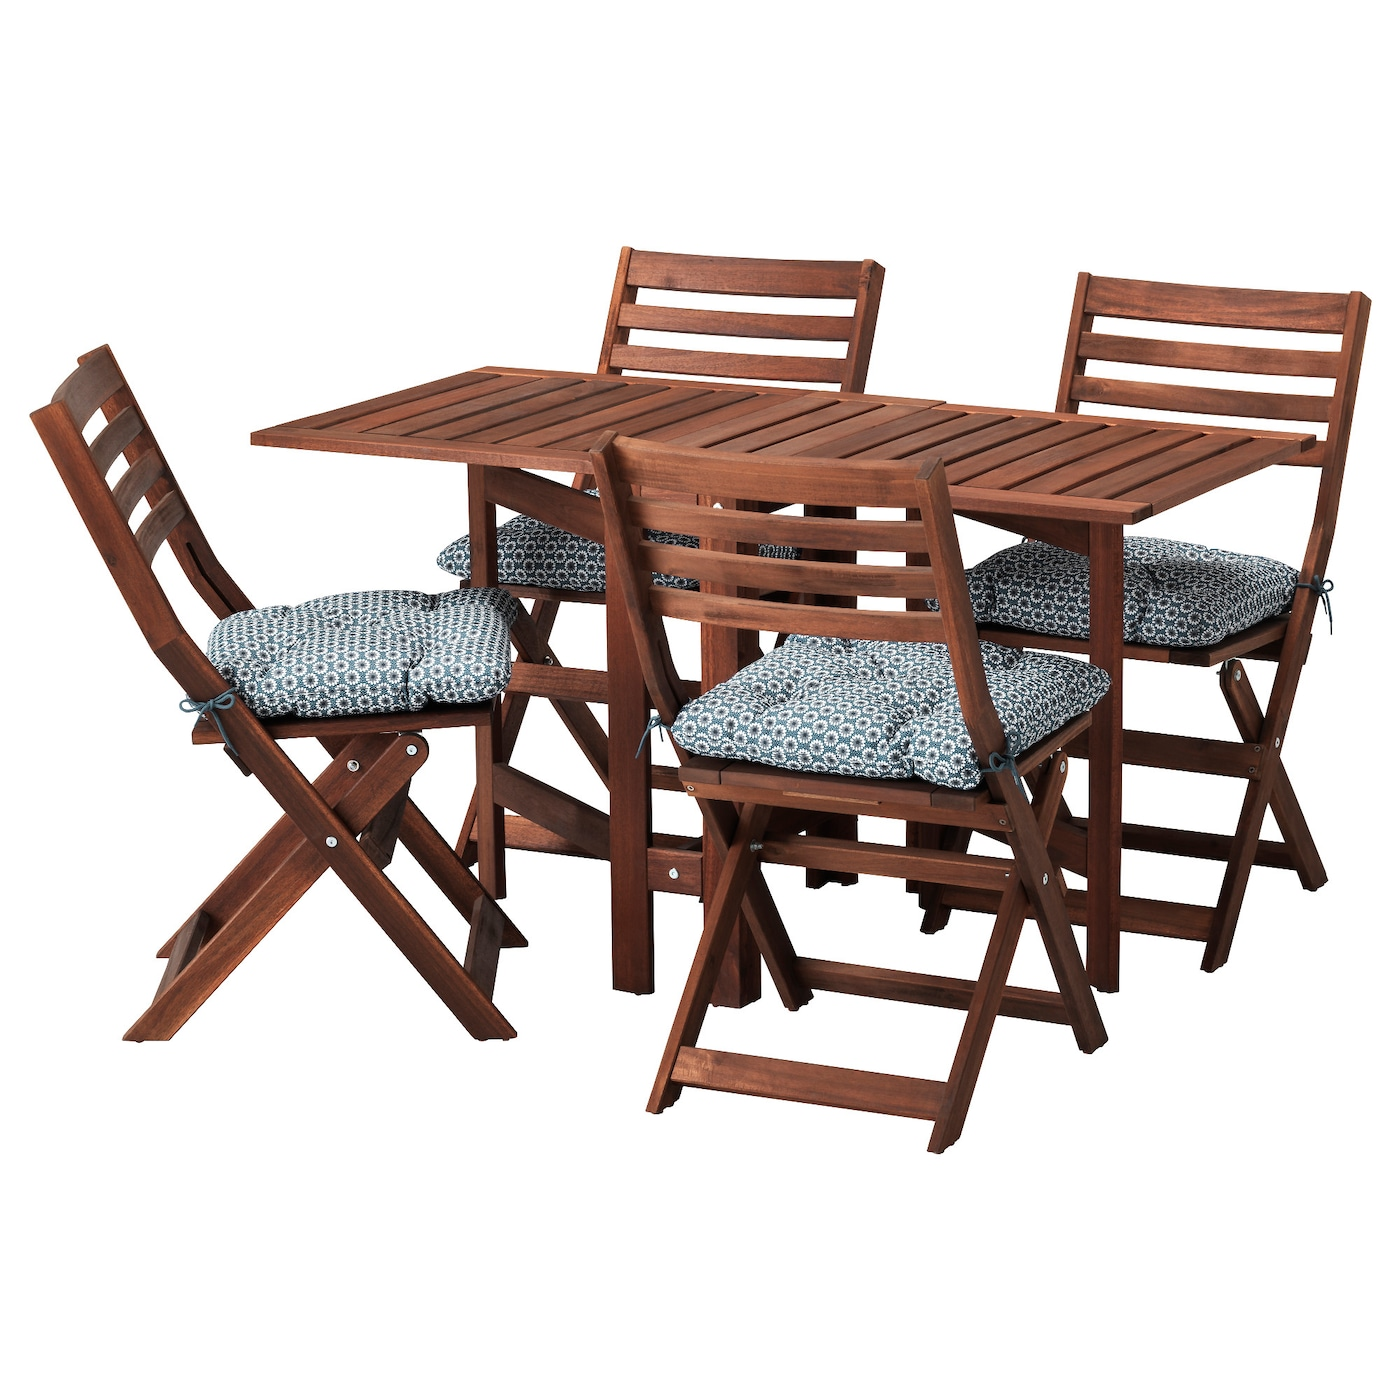 wood table bridgeport master piece card cosco product folding set chair cfm and inch chairs hayneedle